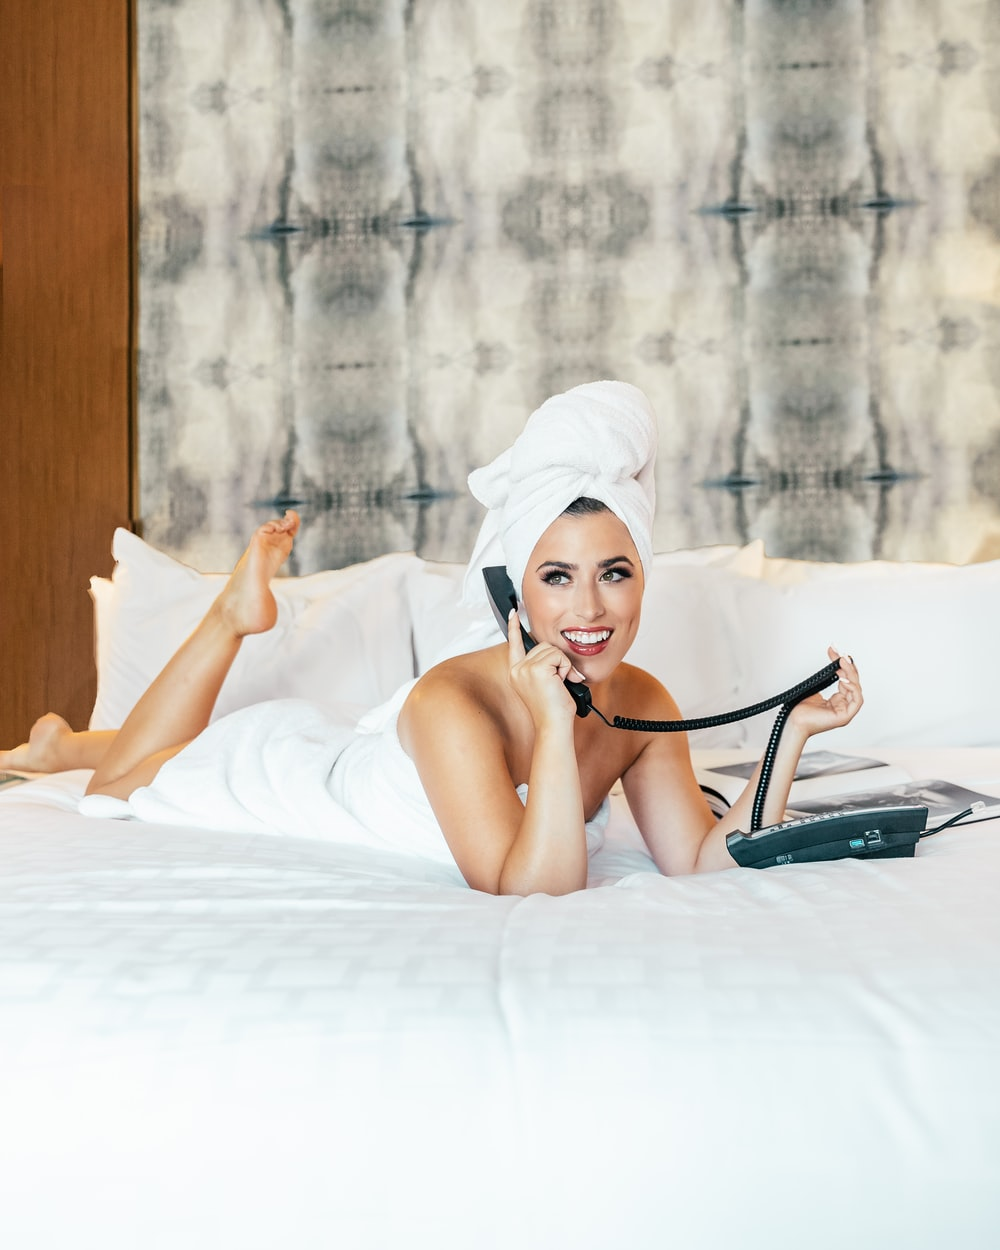 woman wrapped in towel lying on bed talking to desk phone